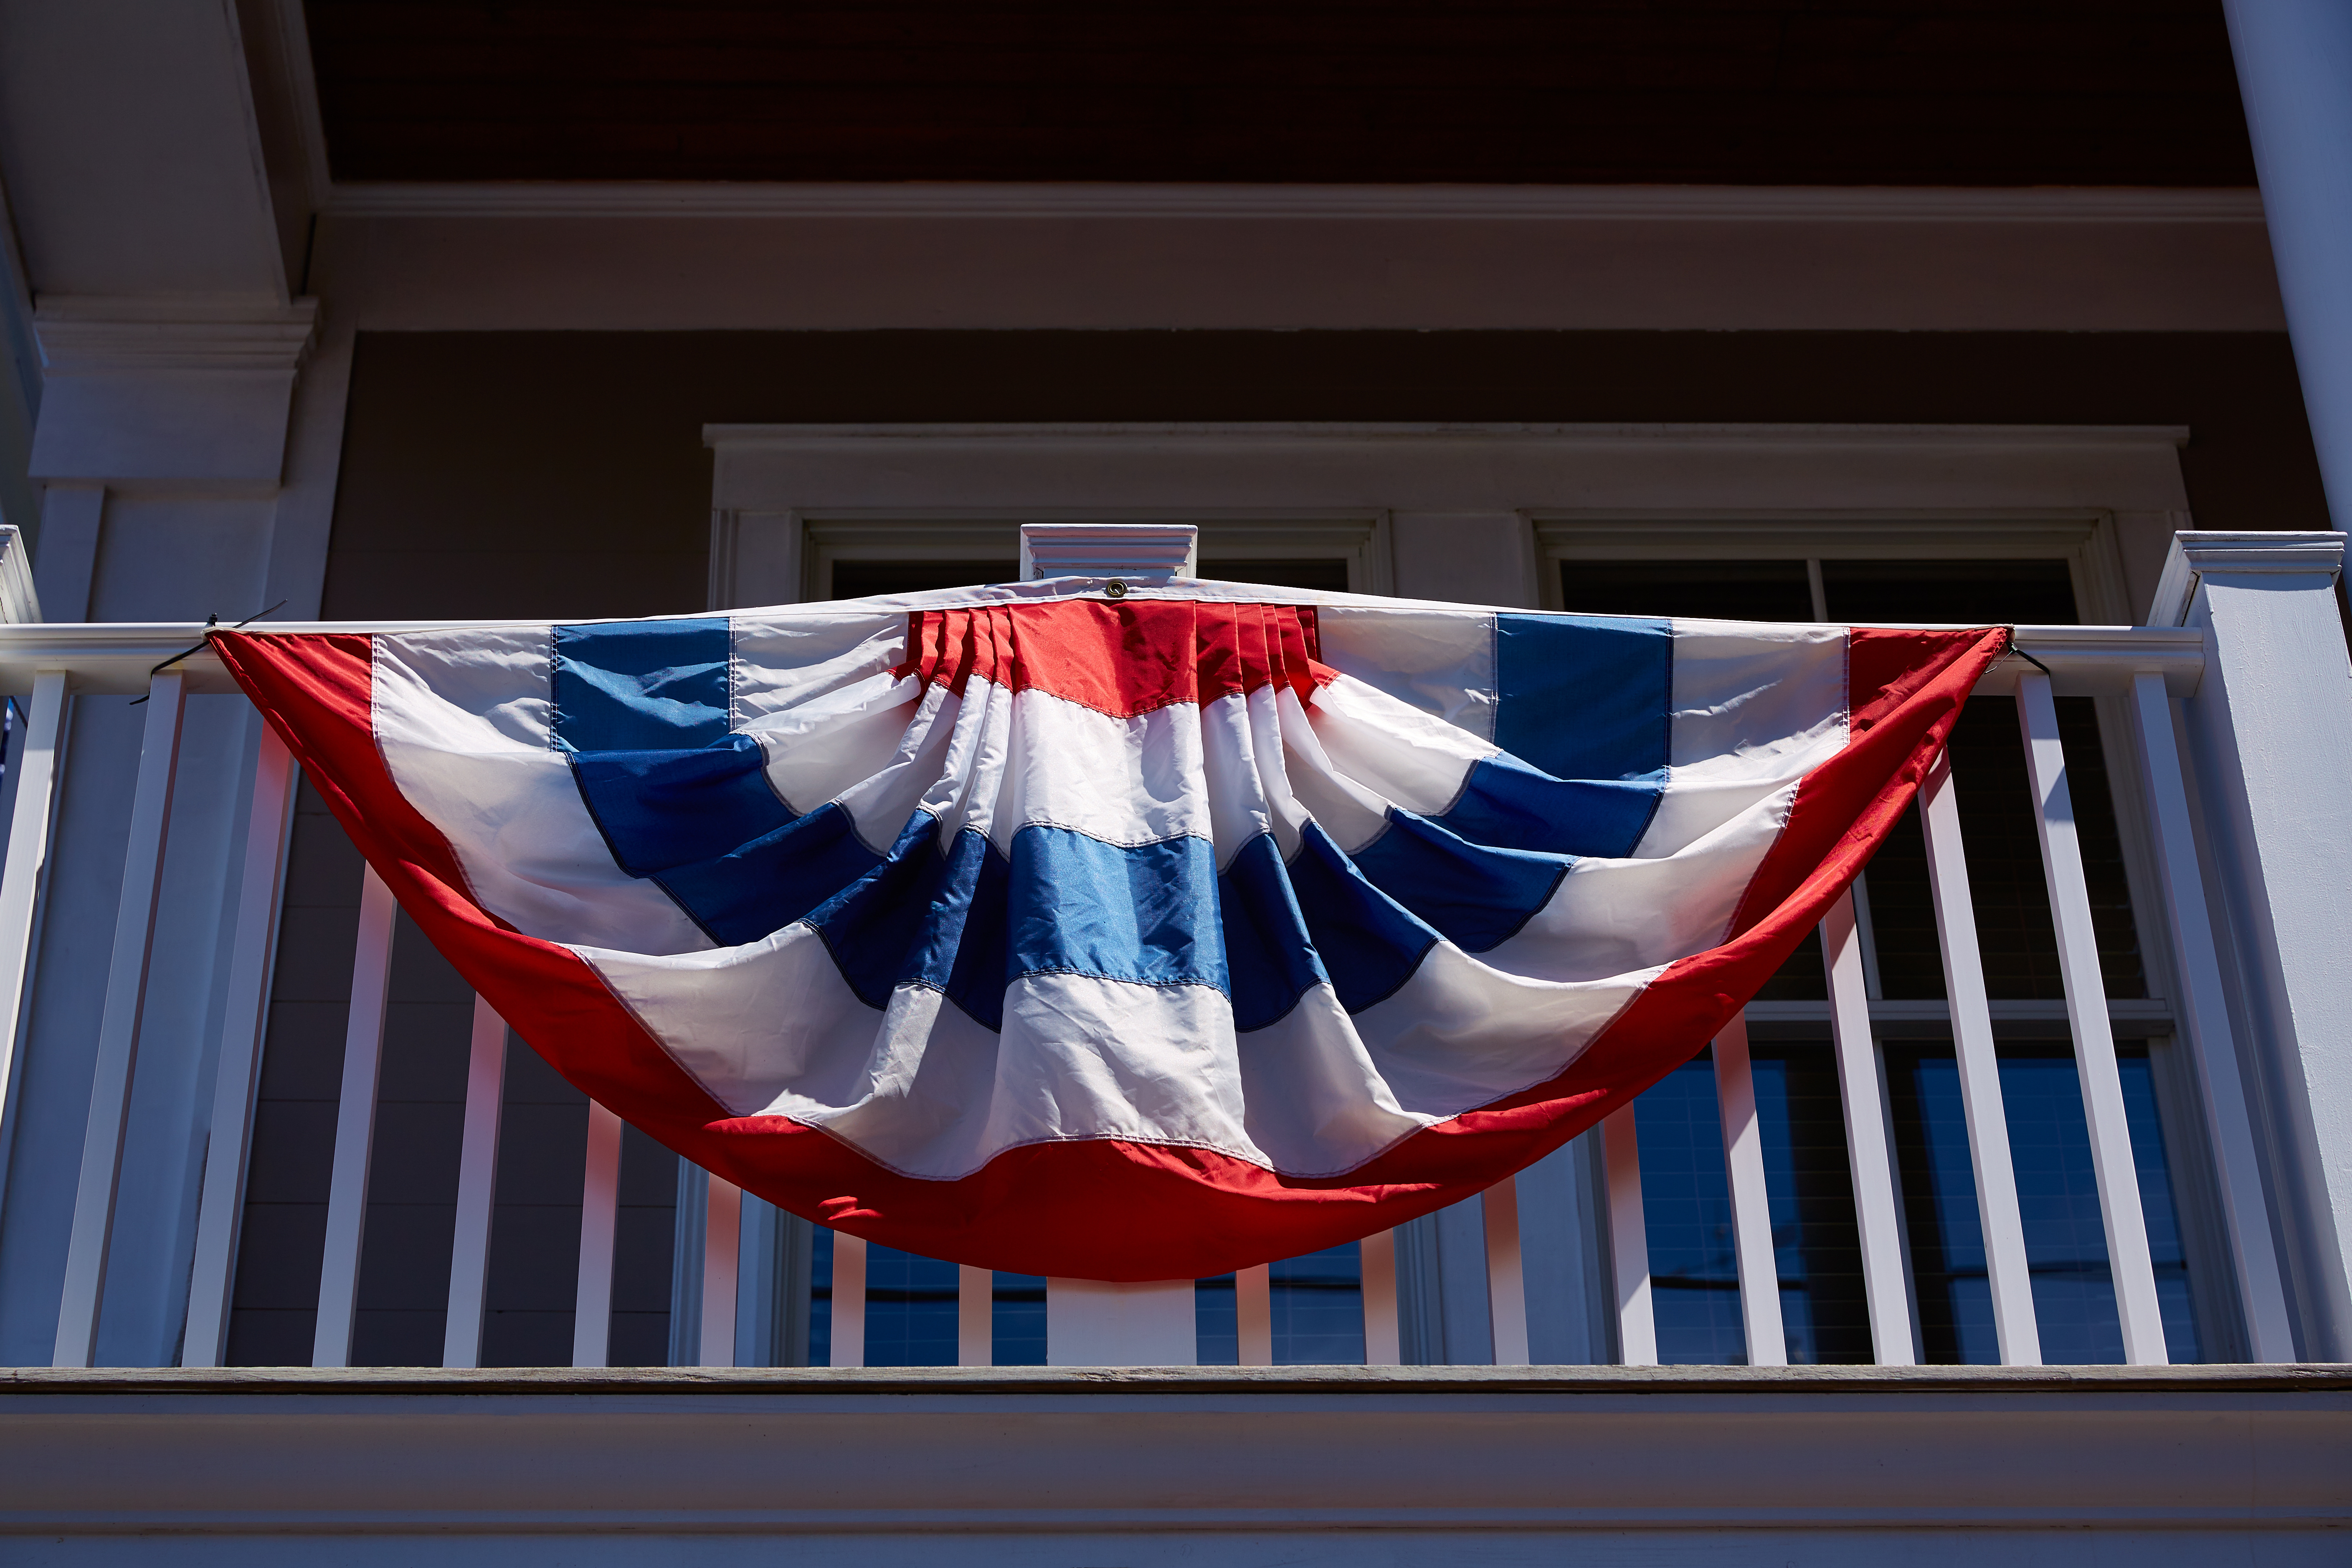 blog image of american flag on an apartment balcony; blog title: 3 Ways to Celebrate the True Meaning of Memorial Day